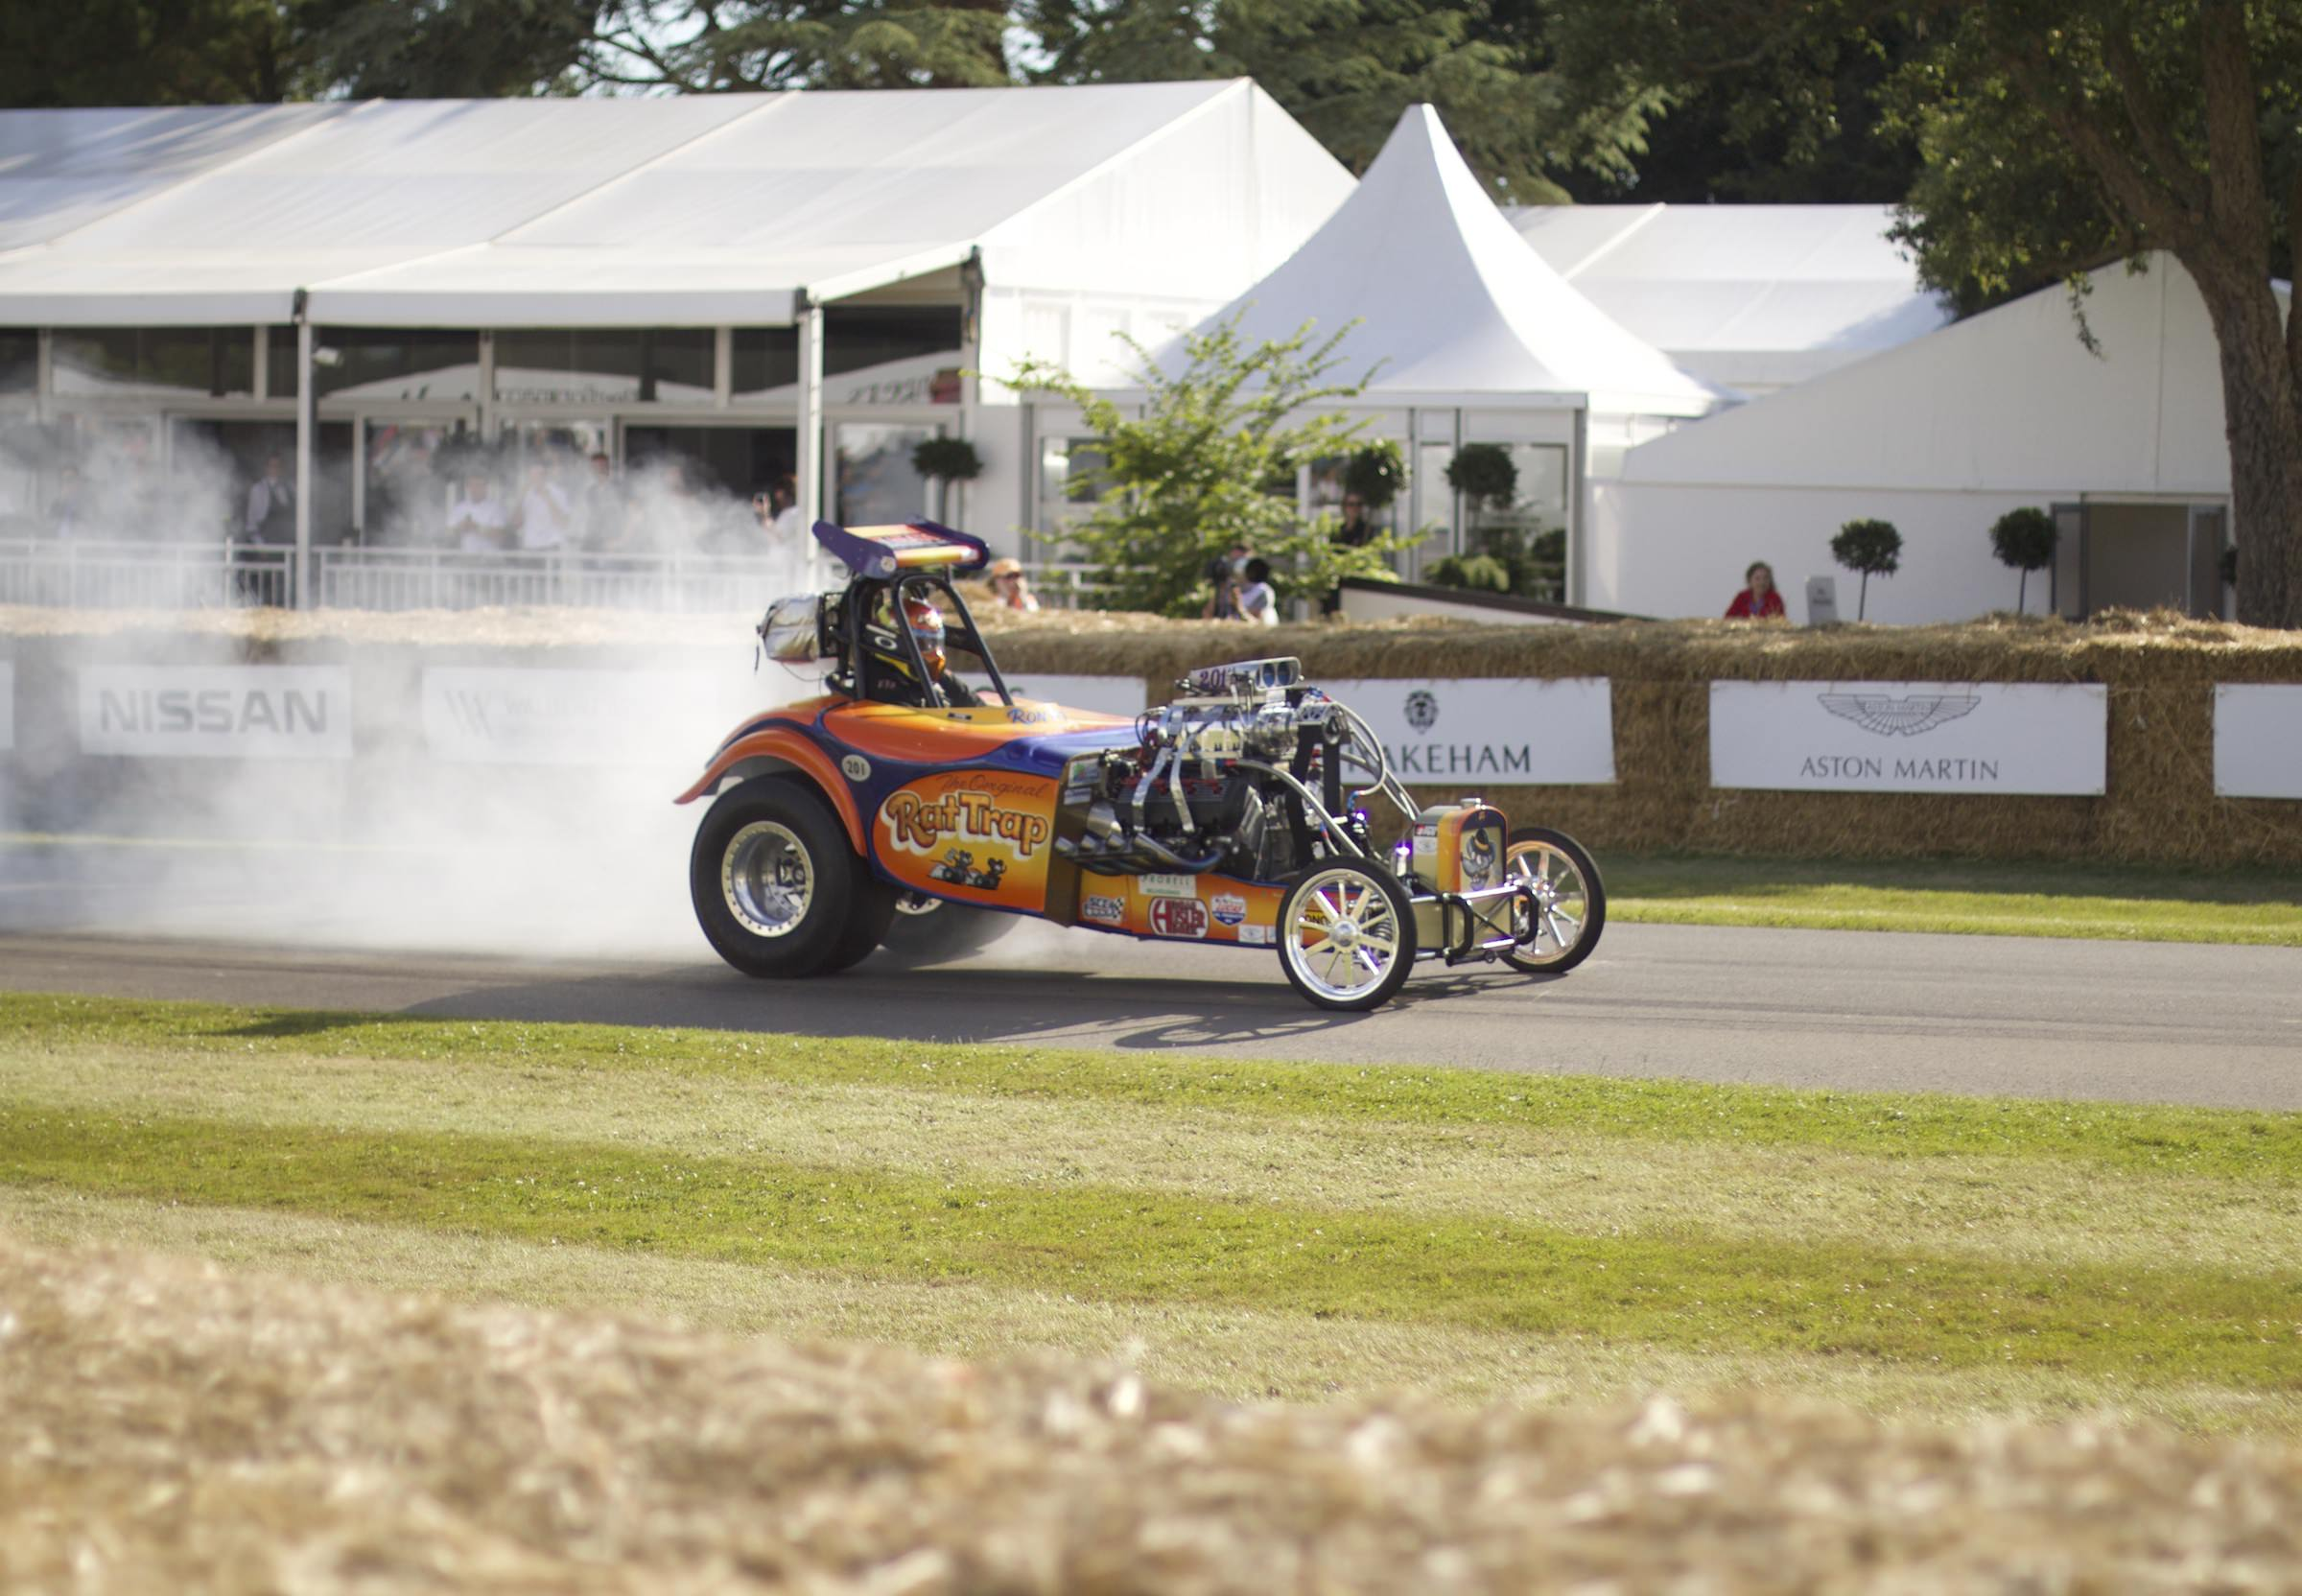 The Official Goodwood Festival Of Speed 2018 Live Stream